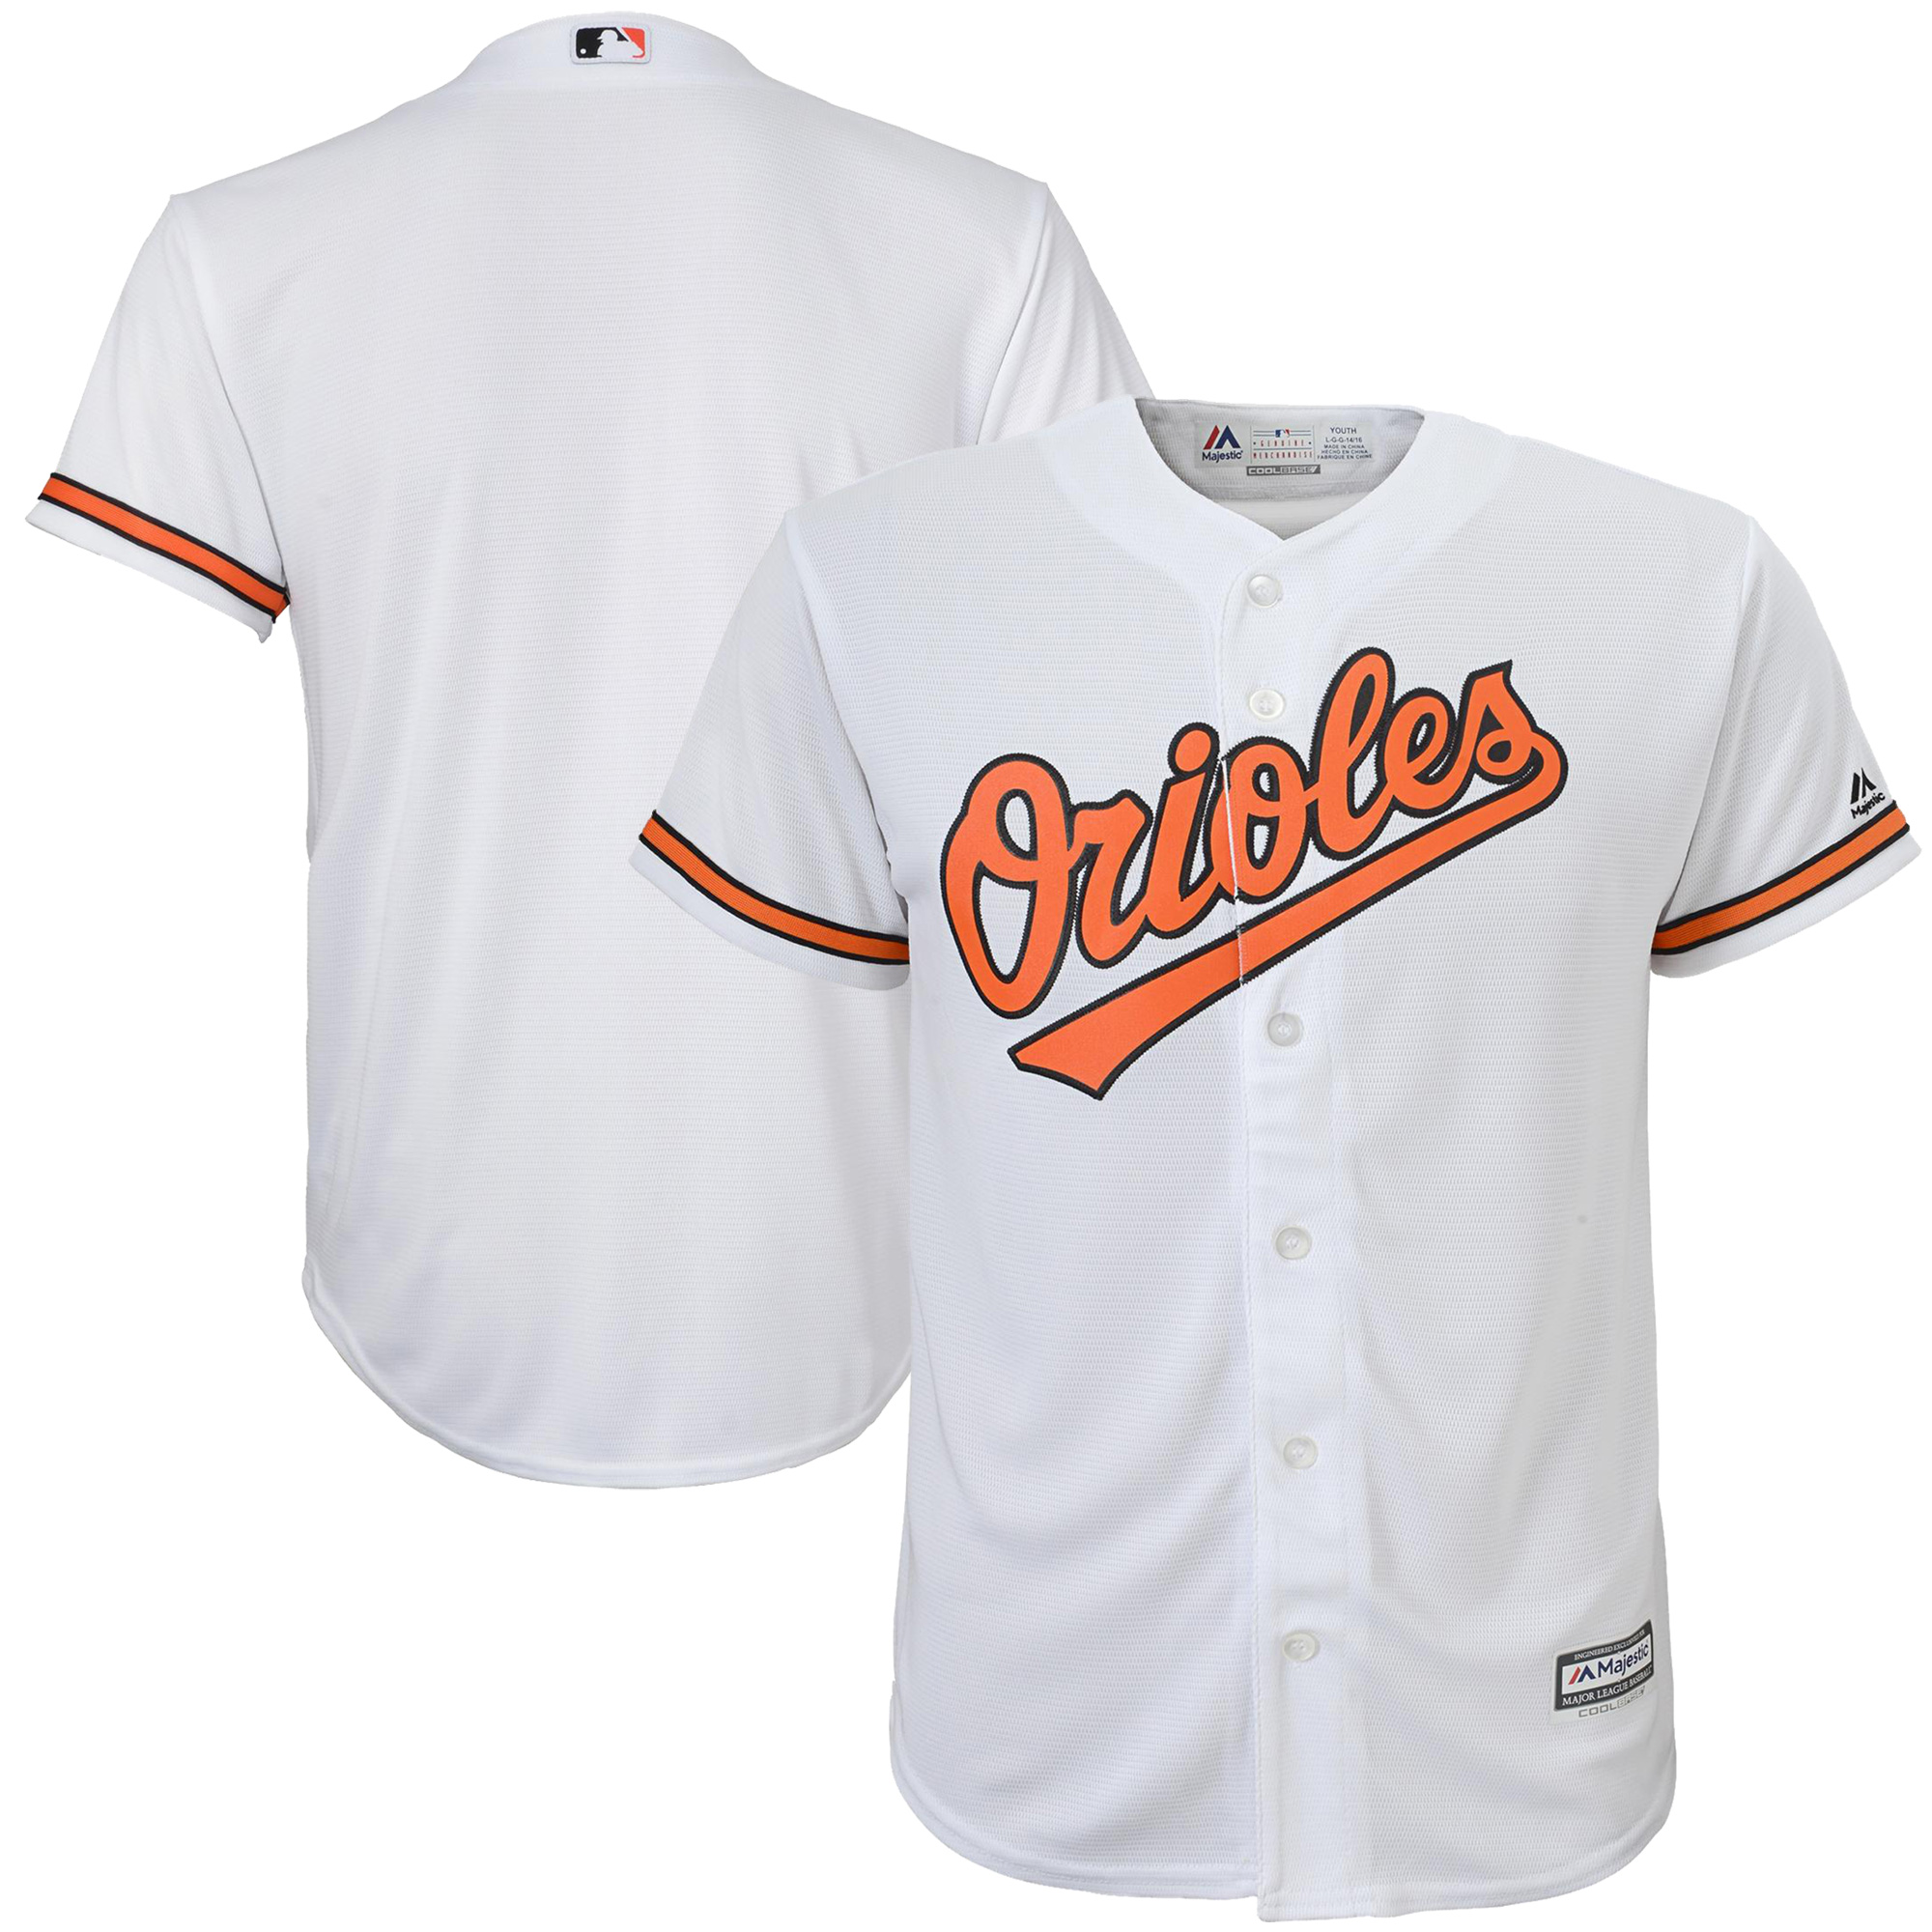 Baltimore Orioles Majestic Preschool Official Cool Base Team Jersey White by Outerstuff